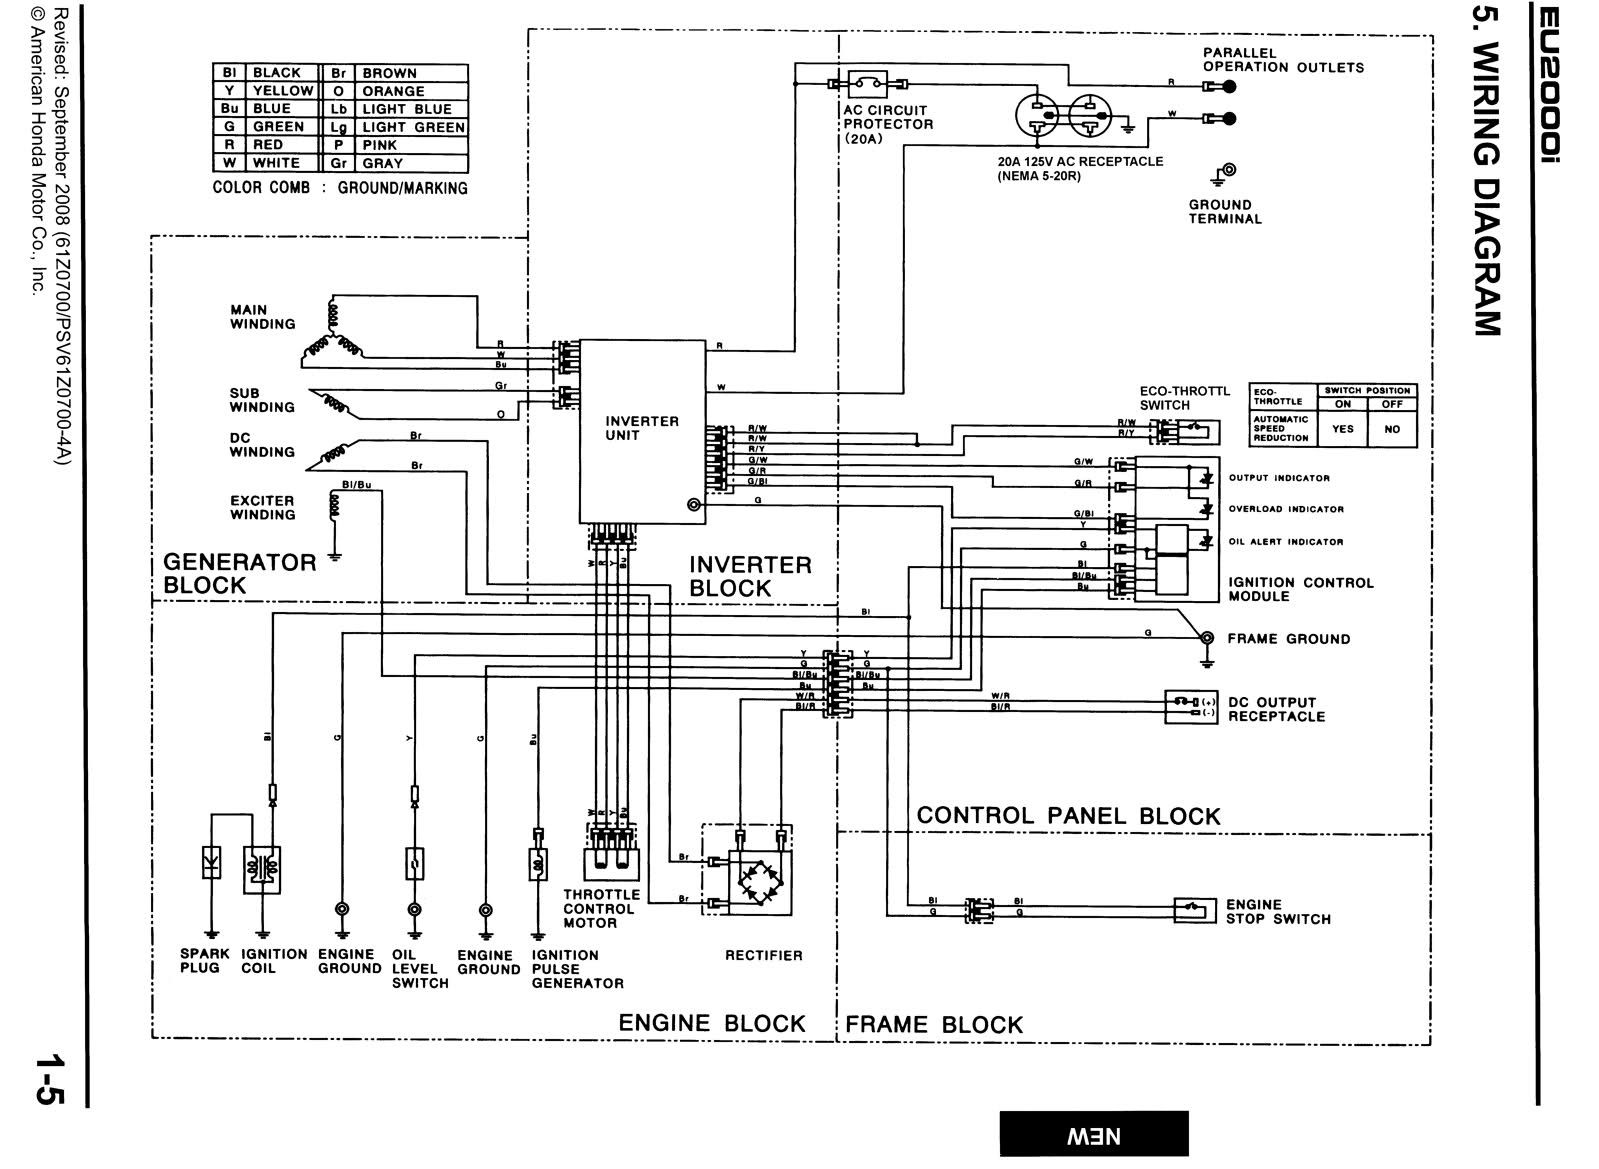 medium resolution of honda generator schematics wiring diagram mega honda generator schematics